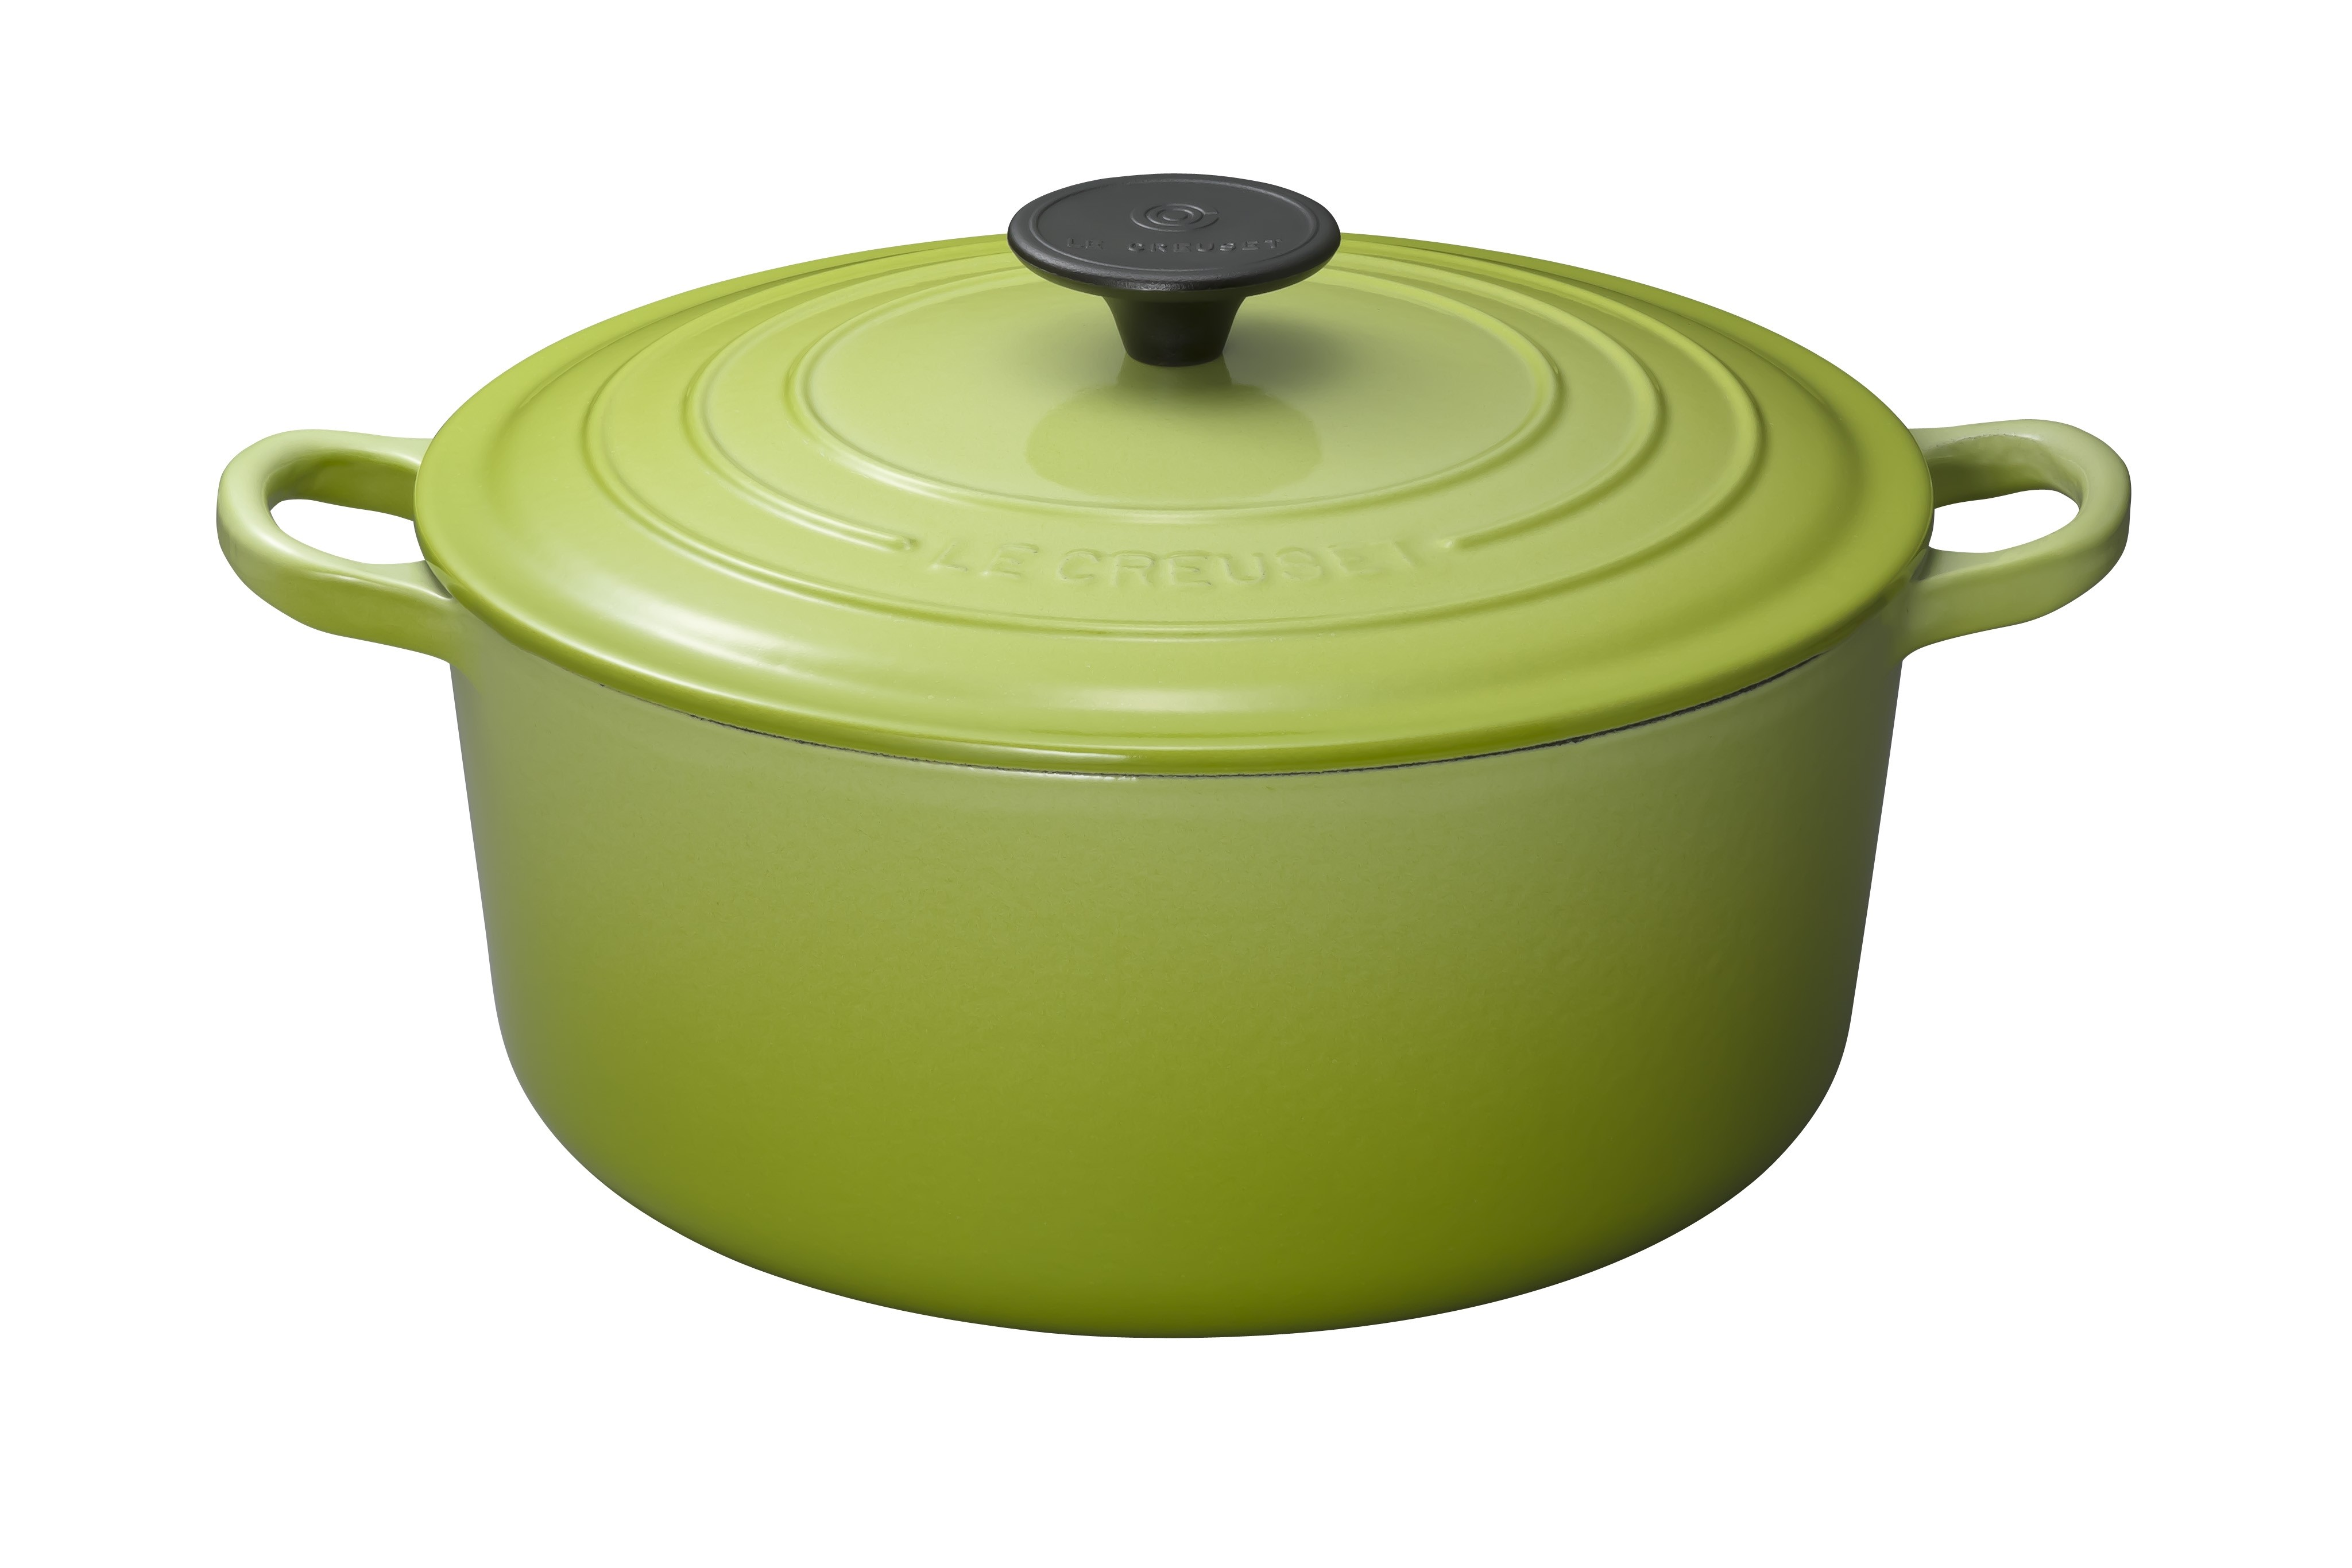 Le Creuset 26cm Round French Oven 圓形鑄鐵鍋 (青色) (5月8日起限售)